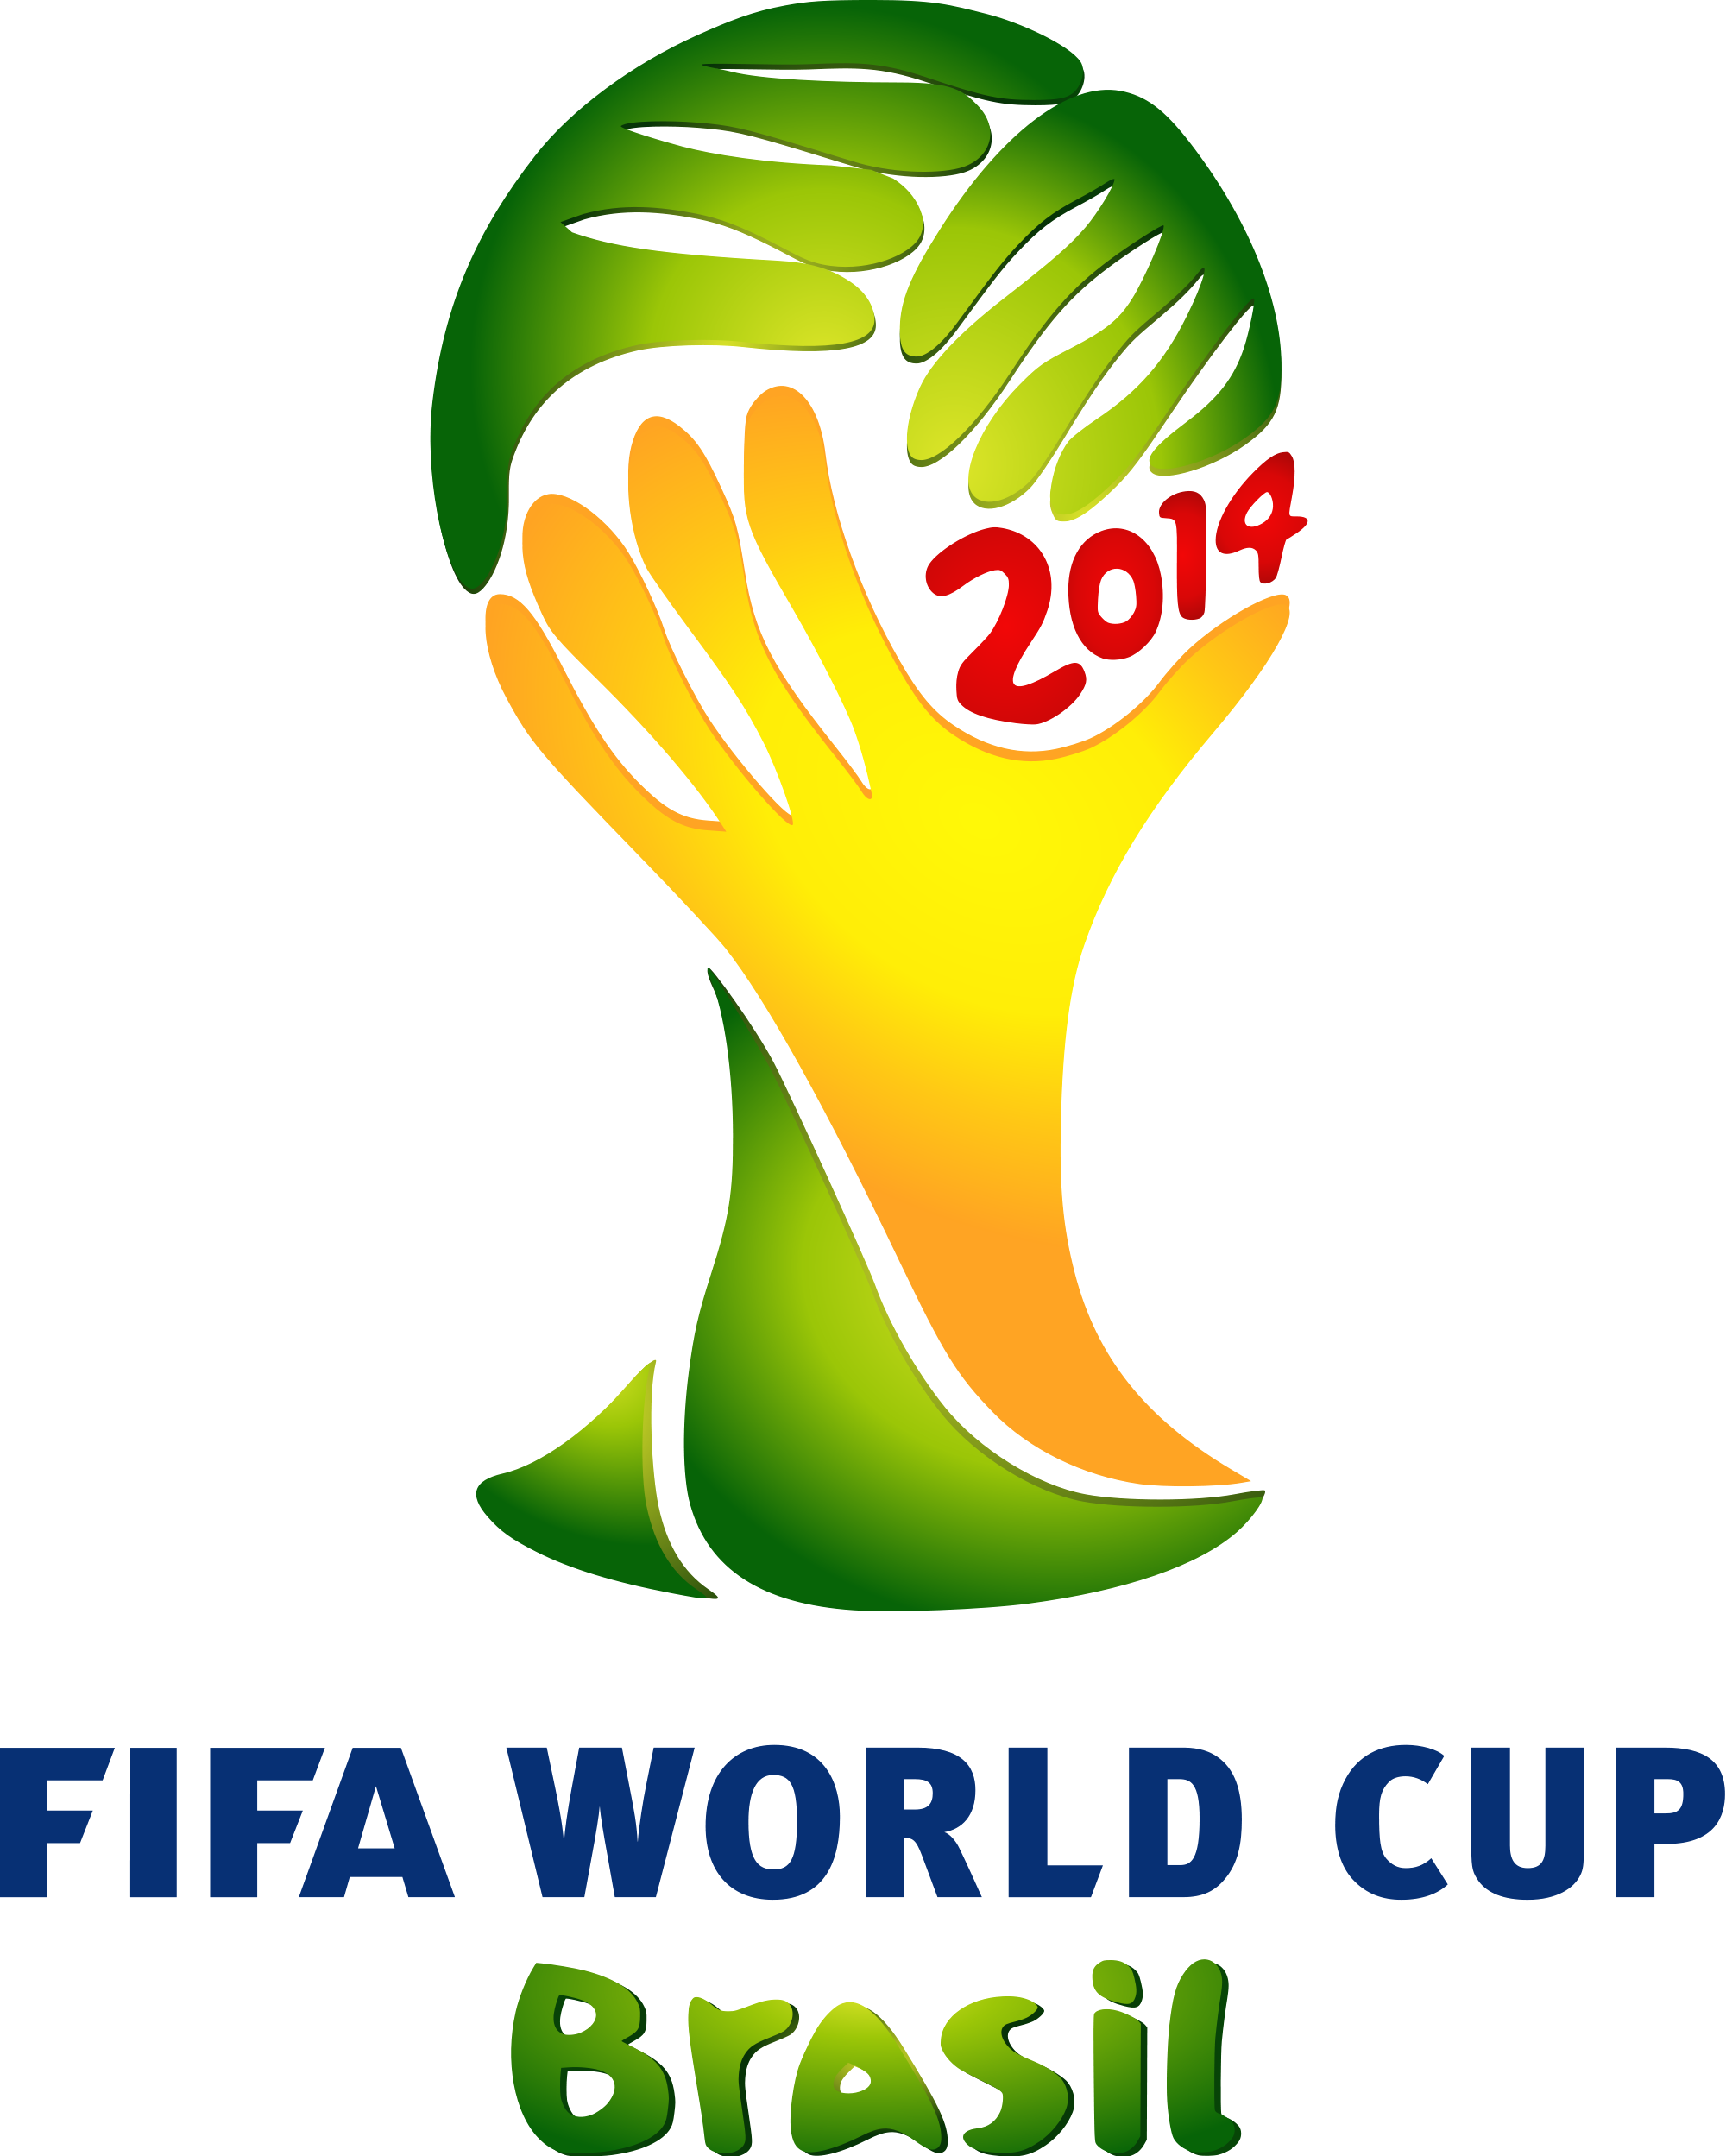 Explore World Cup 2014, Football, and more!